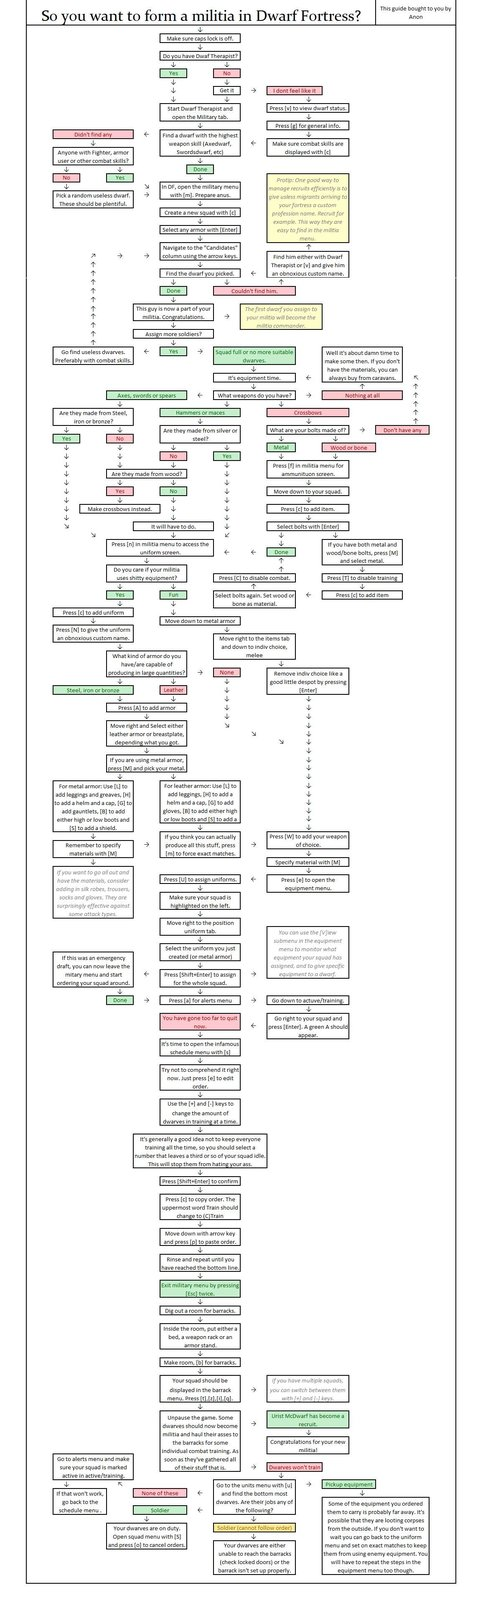 DF Military Setup Flowchart